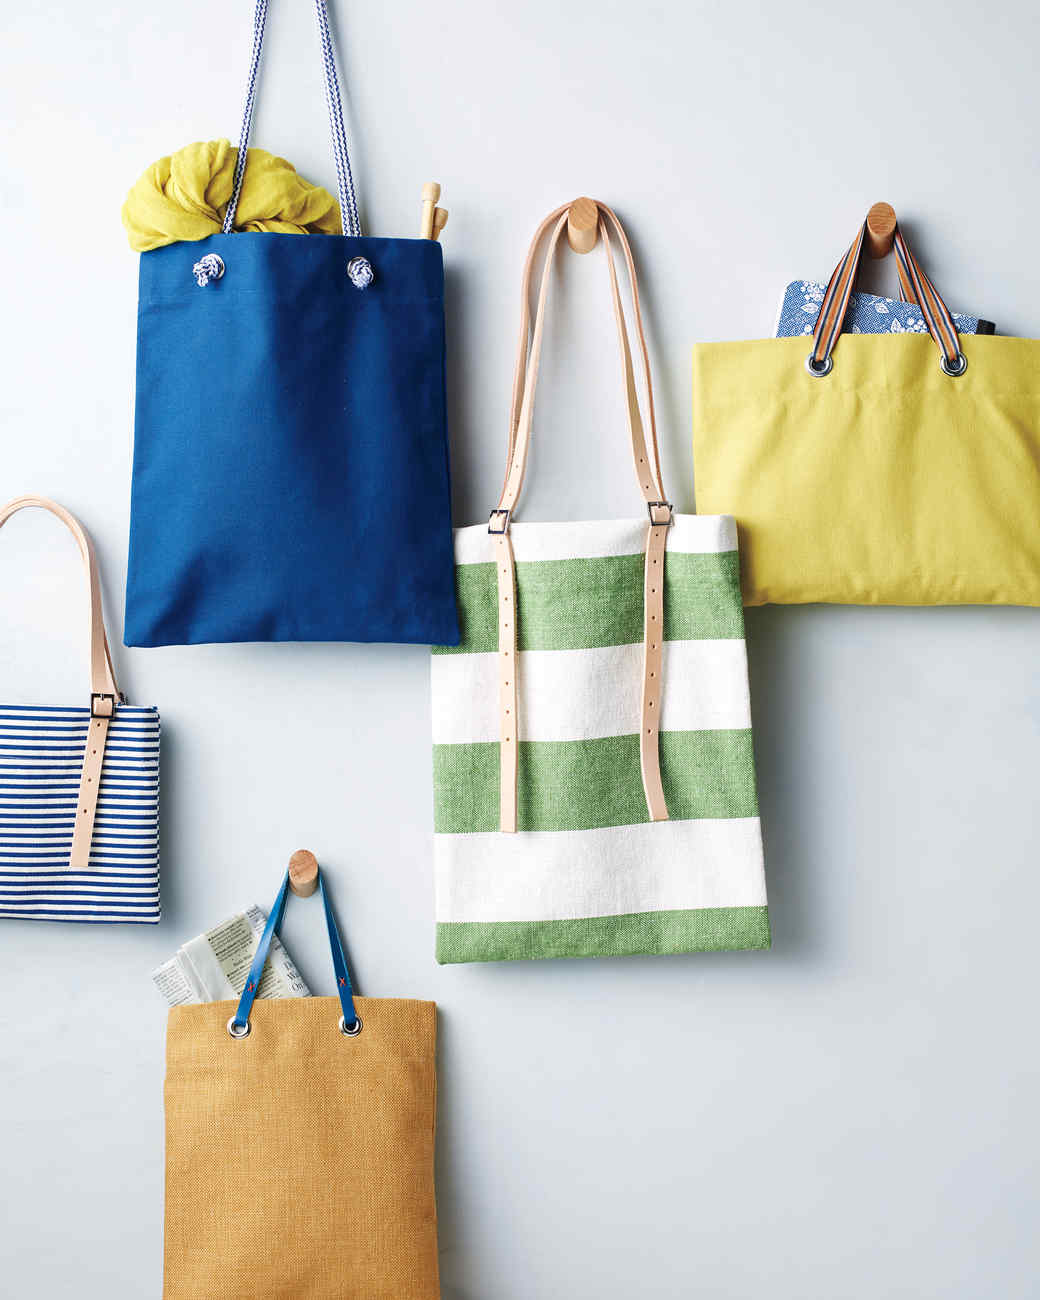 tote-bag-diy-composition-wall-159-d111753-moire-resize.jpg